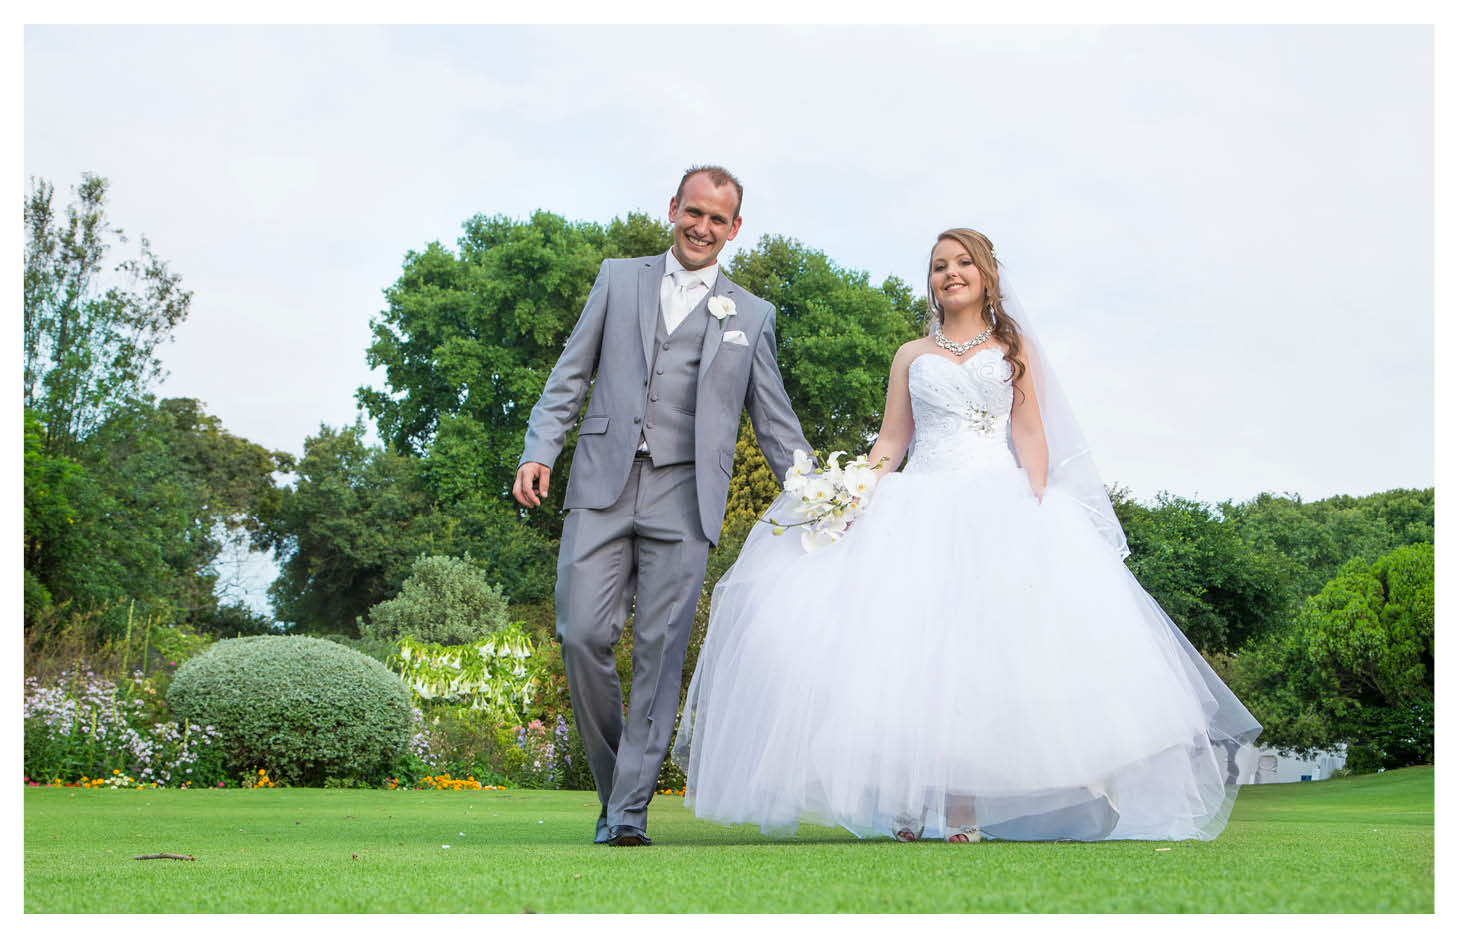 A Classic Wedding - bride and groom photography at the country club johannesburg